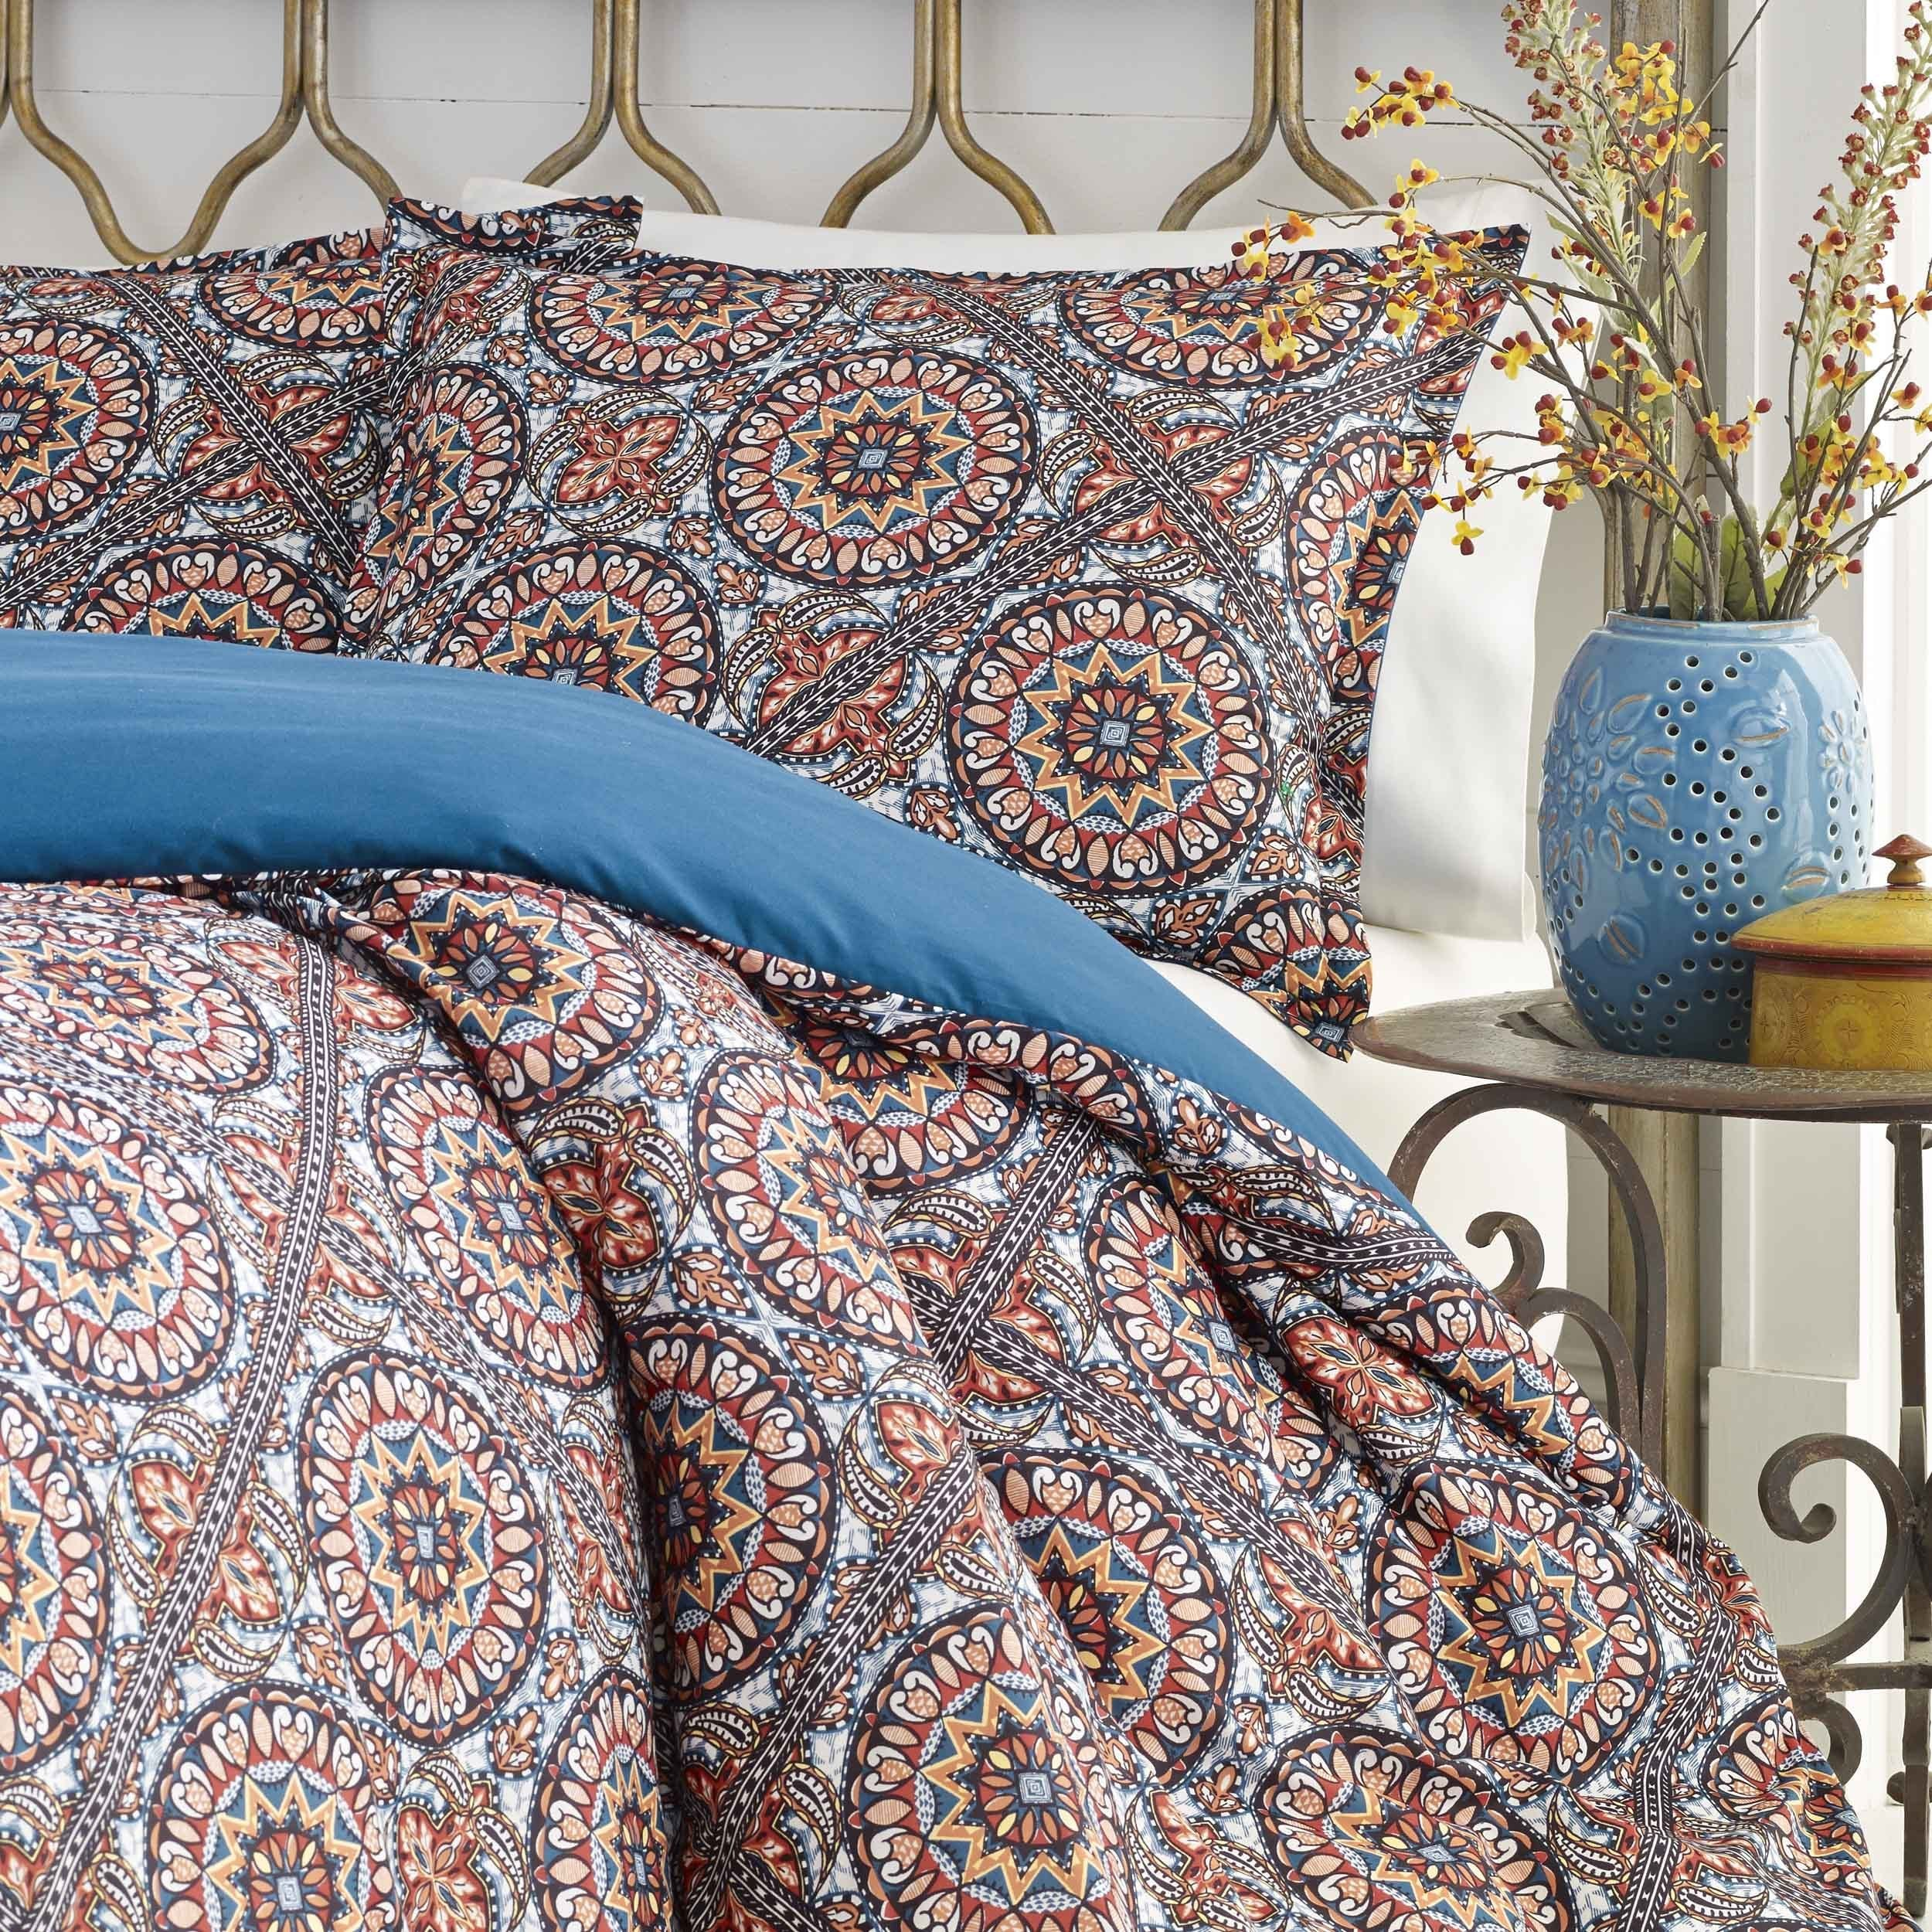 Shop Azalea Skye Sitka Suzani Duvet Cover Set   Free Shipping On Orders  Over $45   Overstock.com   15688455